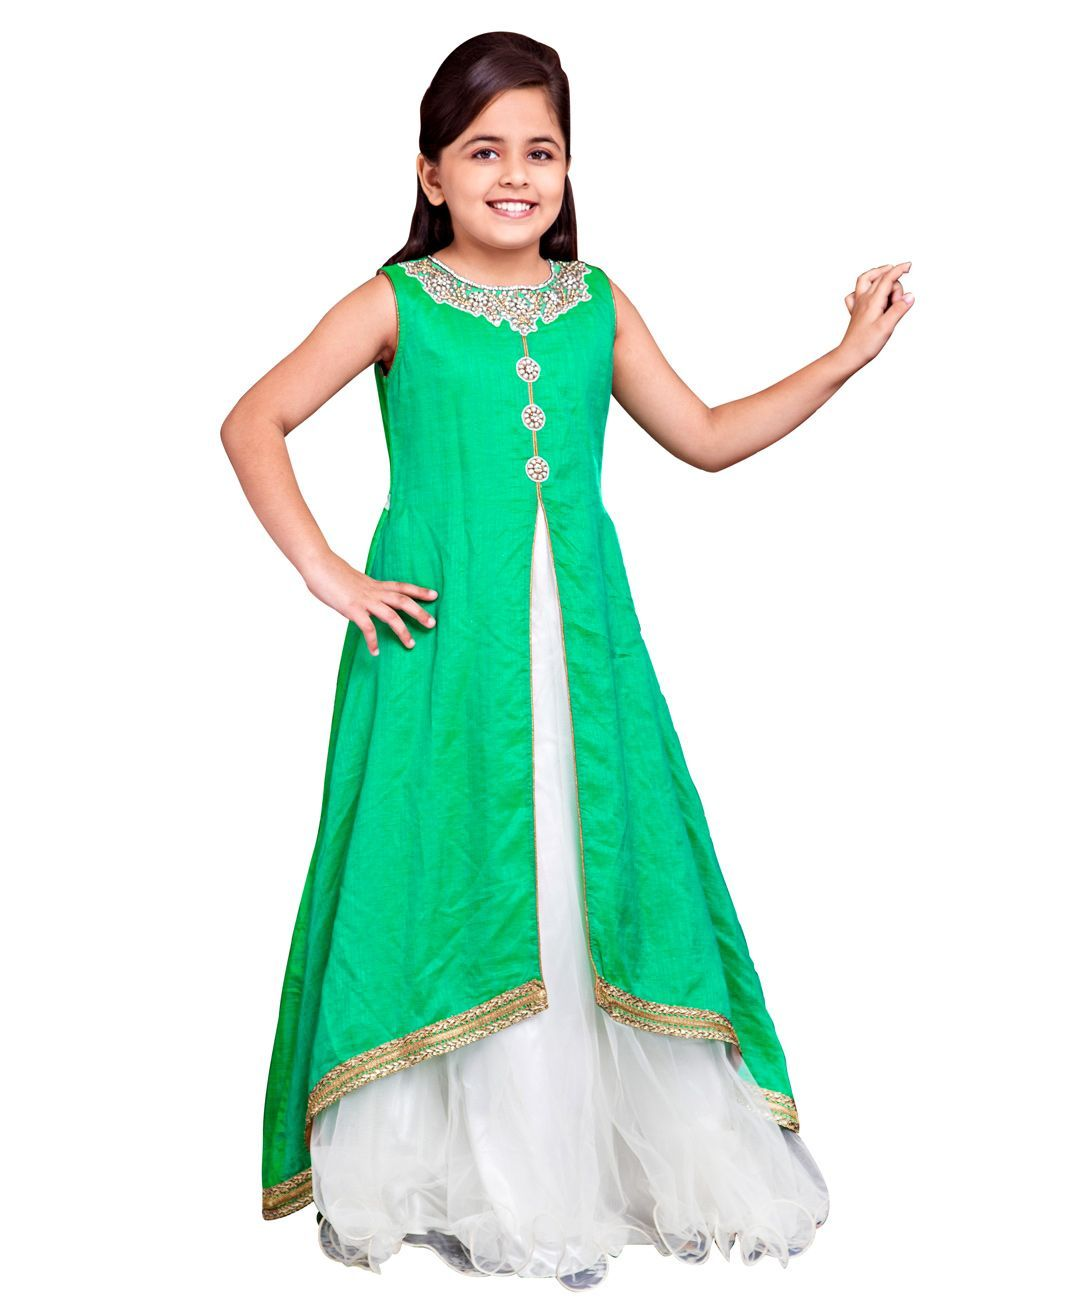 fd1c6169fc Buy Betty By Tiny Kingdom Ethnic Evening Gown Green for Girls (8-9 Years